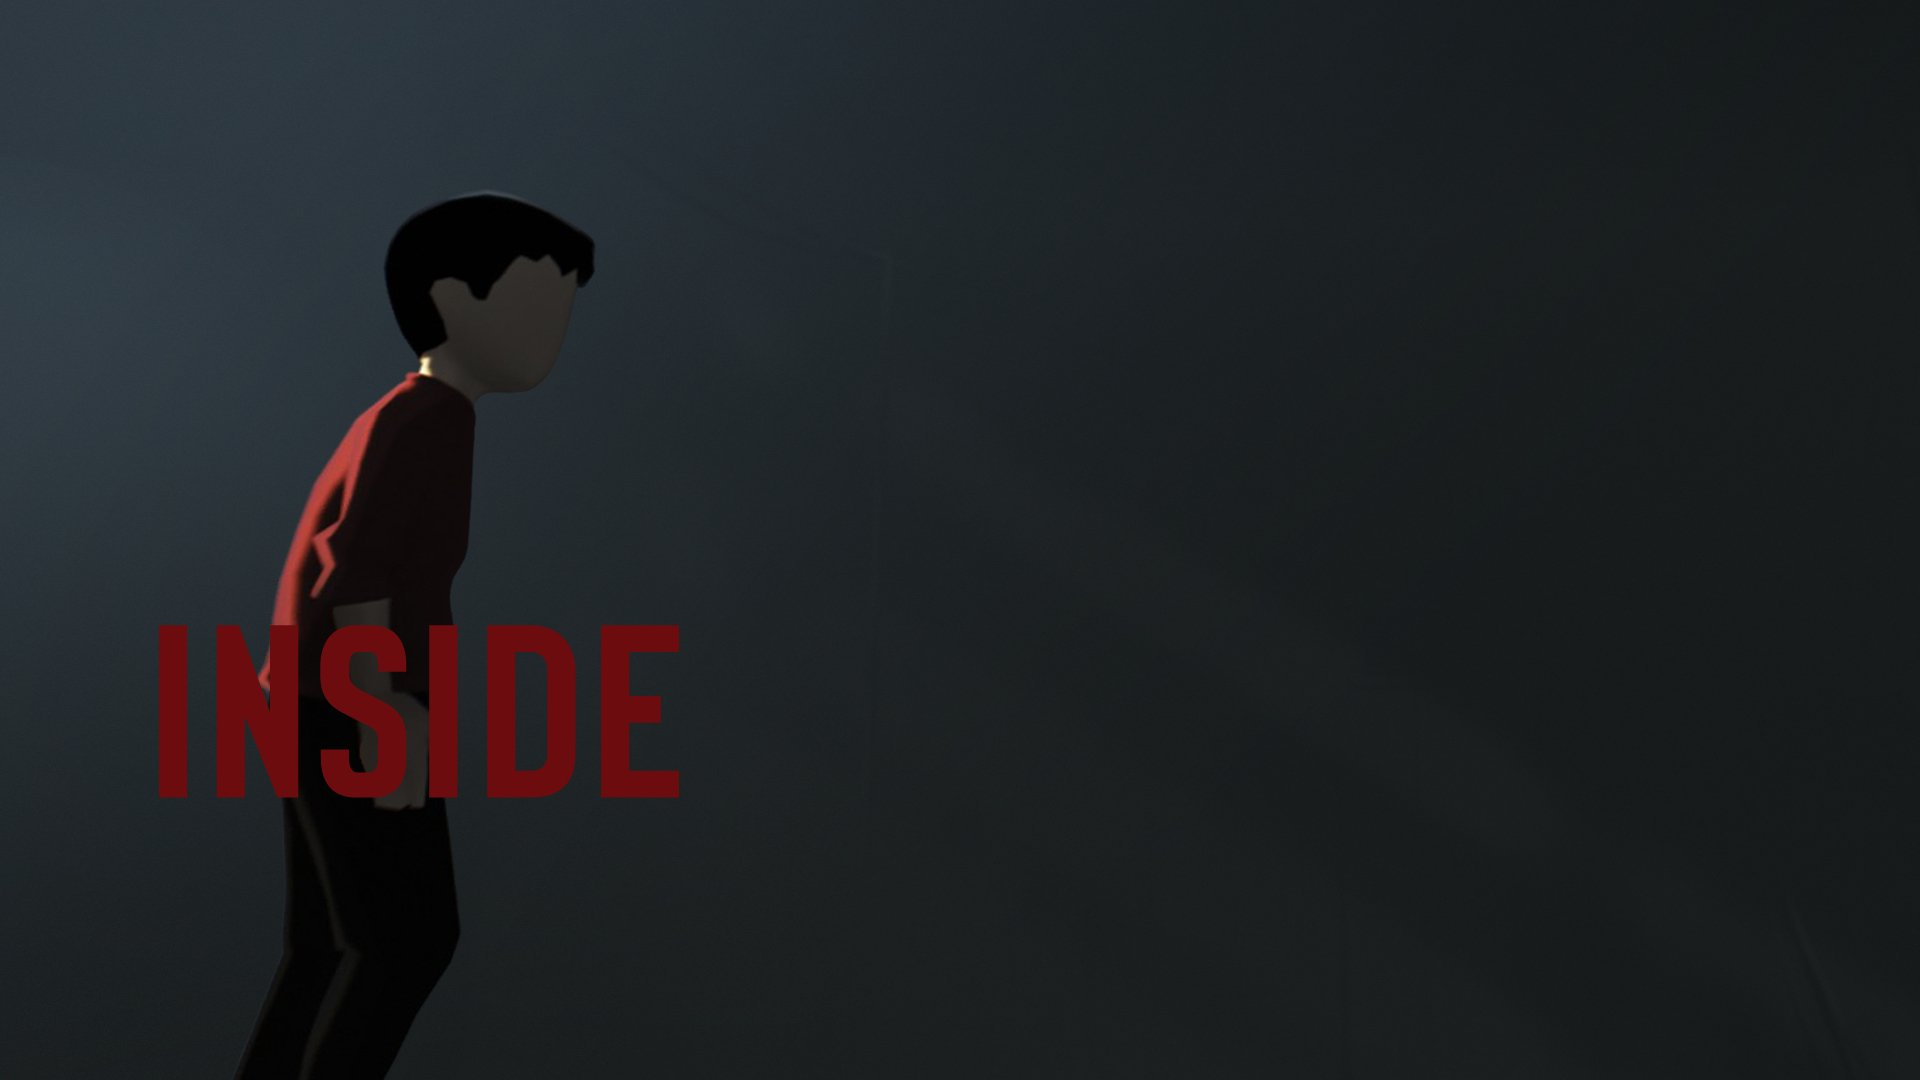 PlayStation Confirms 'Inside' Coming to PS4